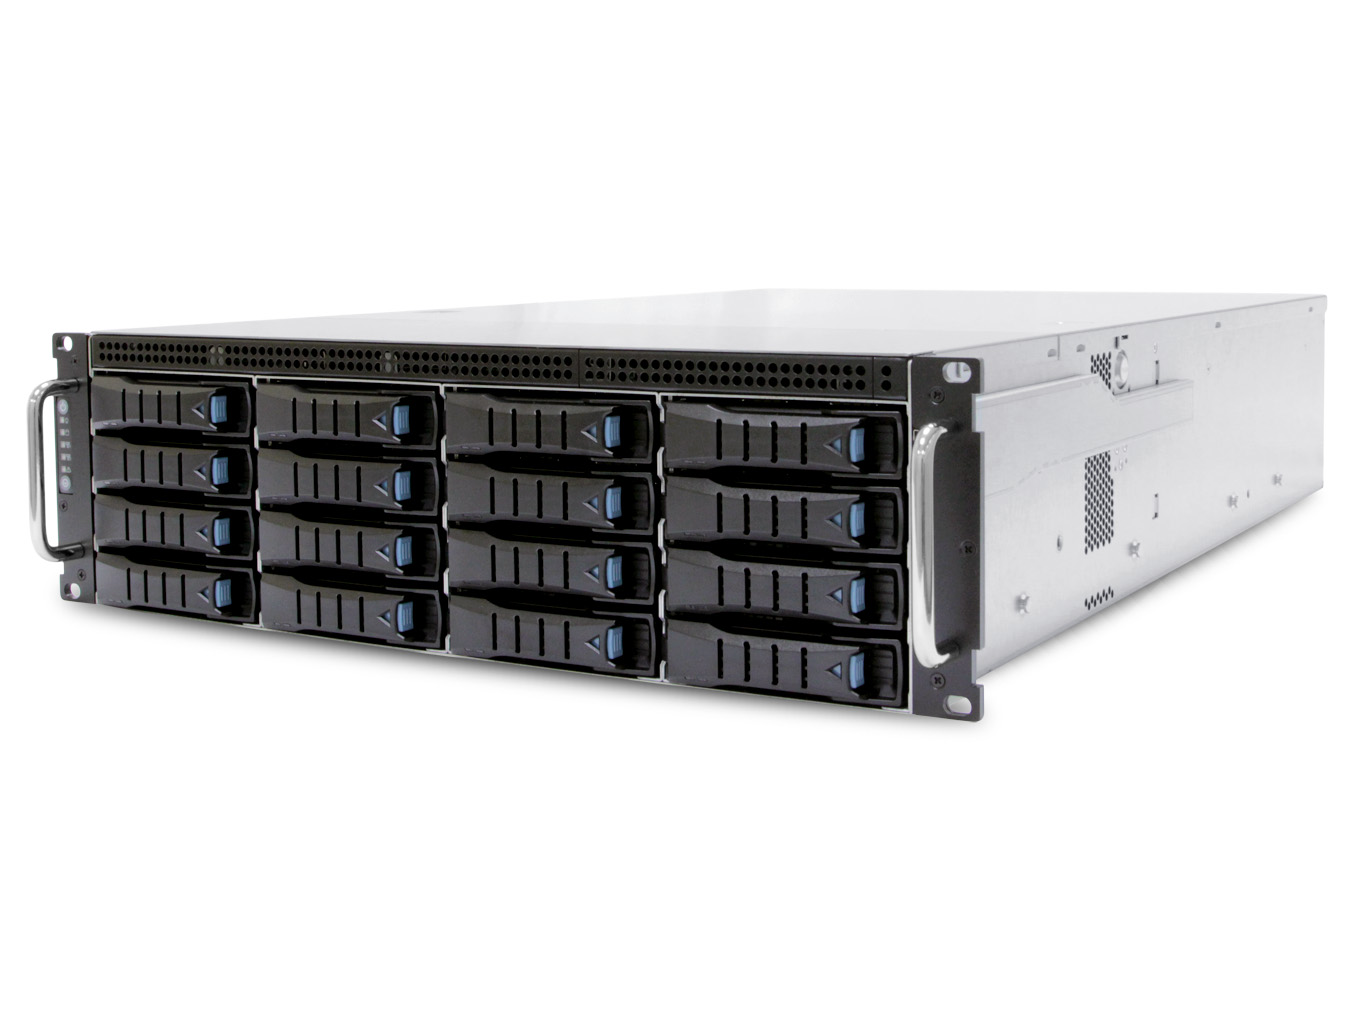 AIC SB302-LB XP1-S302LB01 3U 16-Bay Storage Server